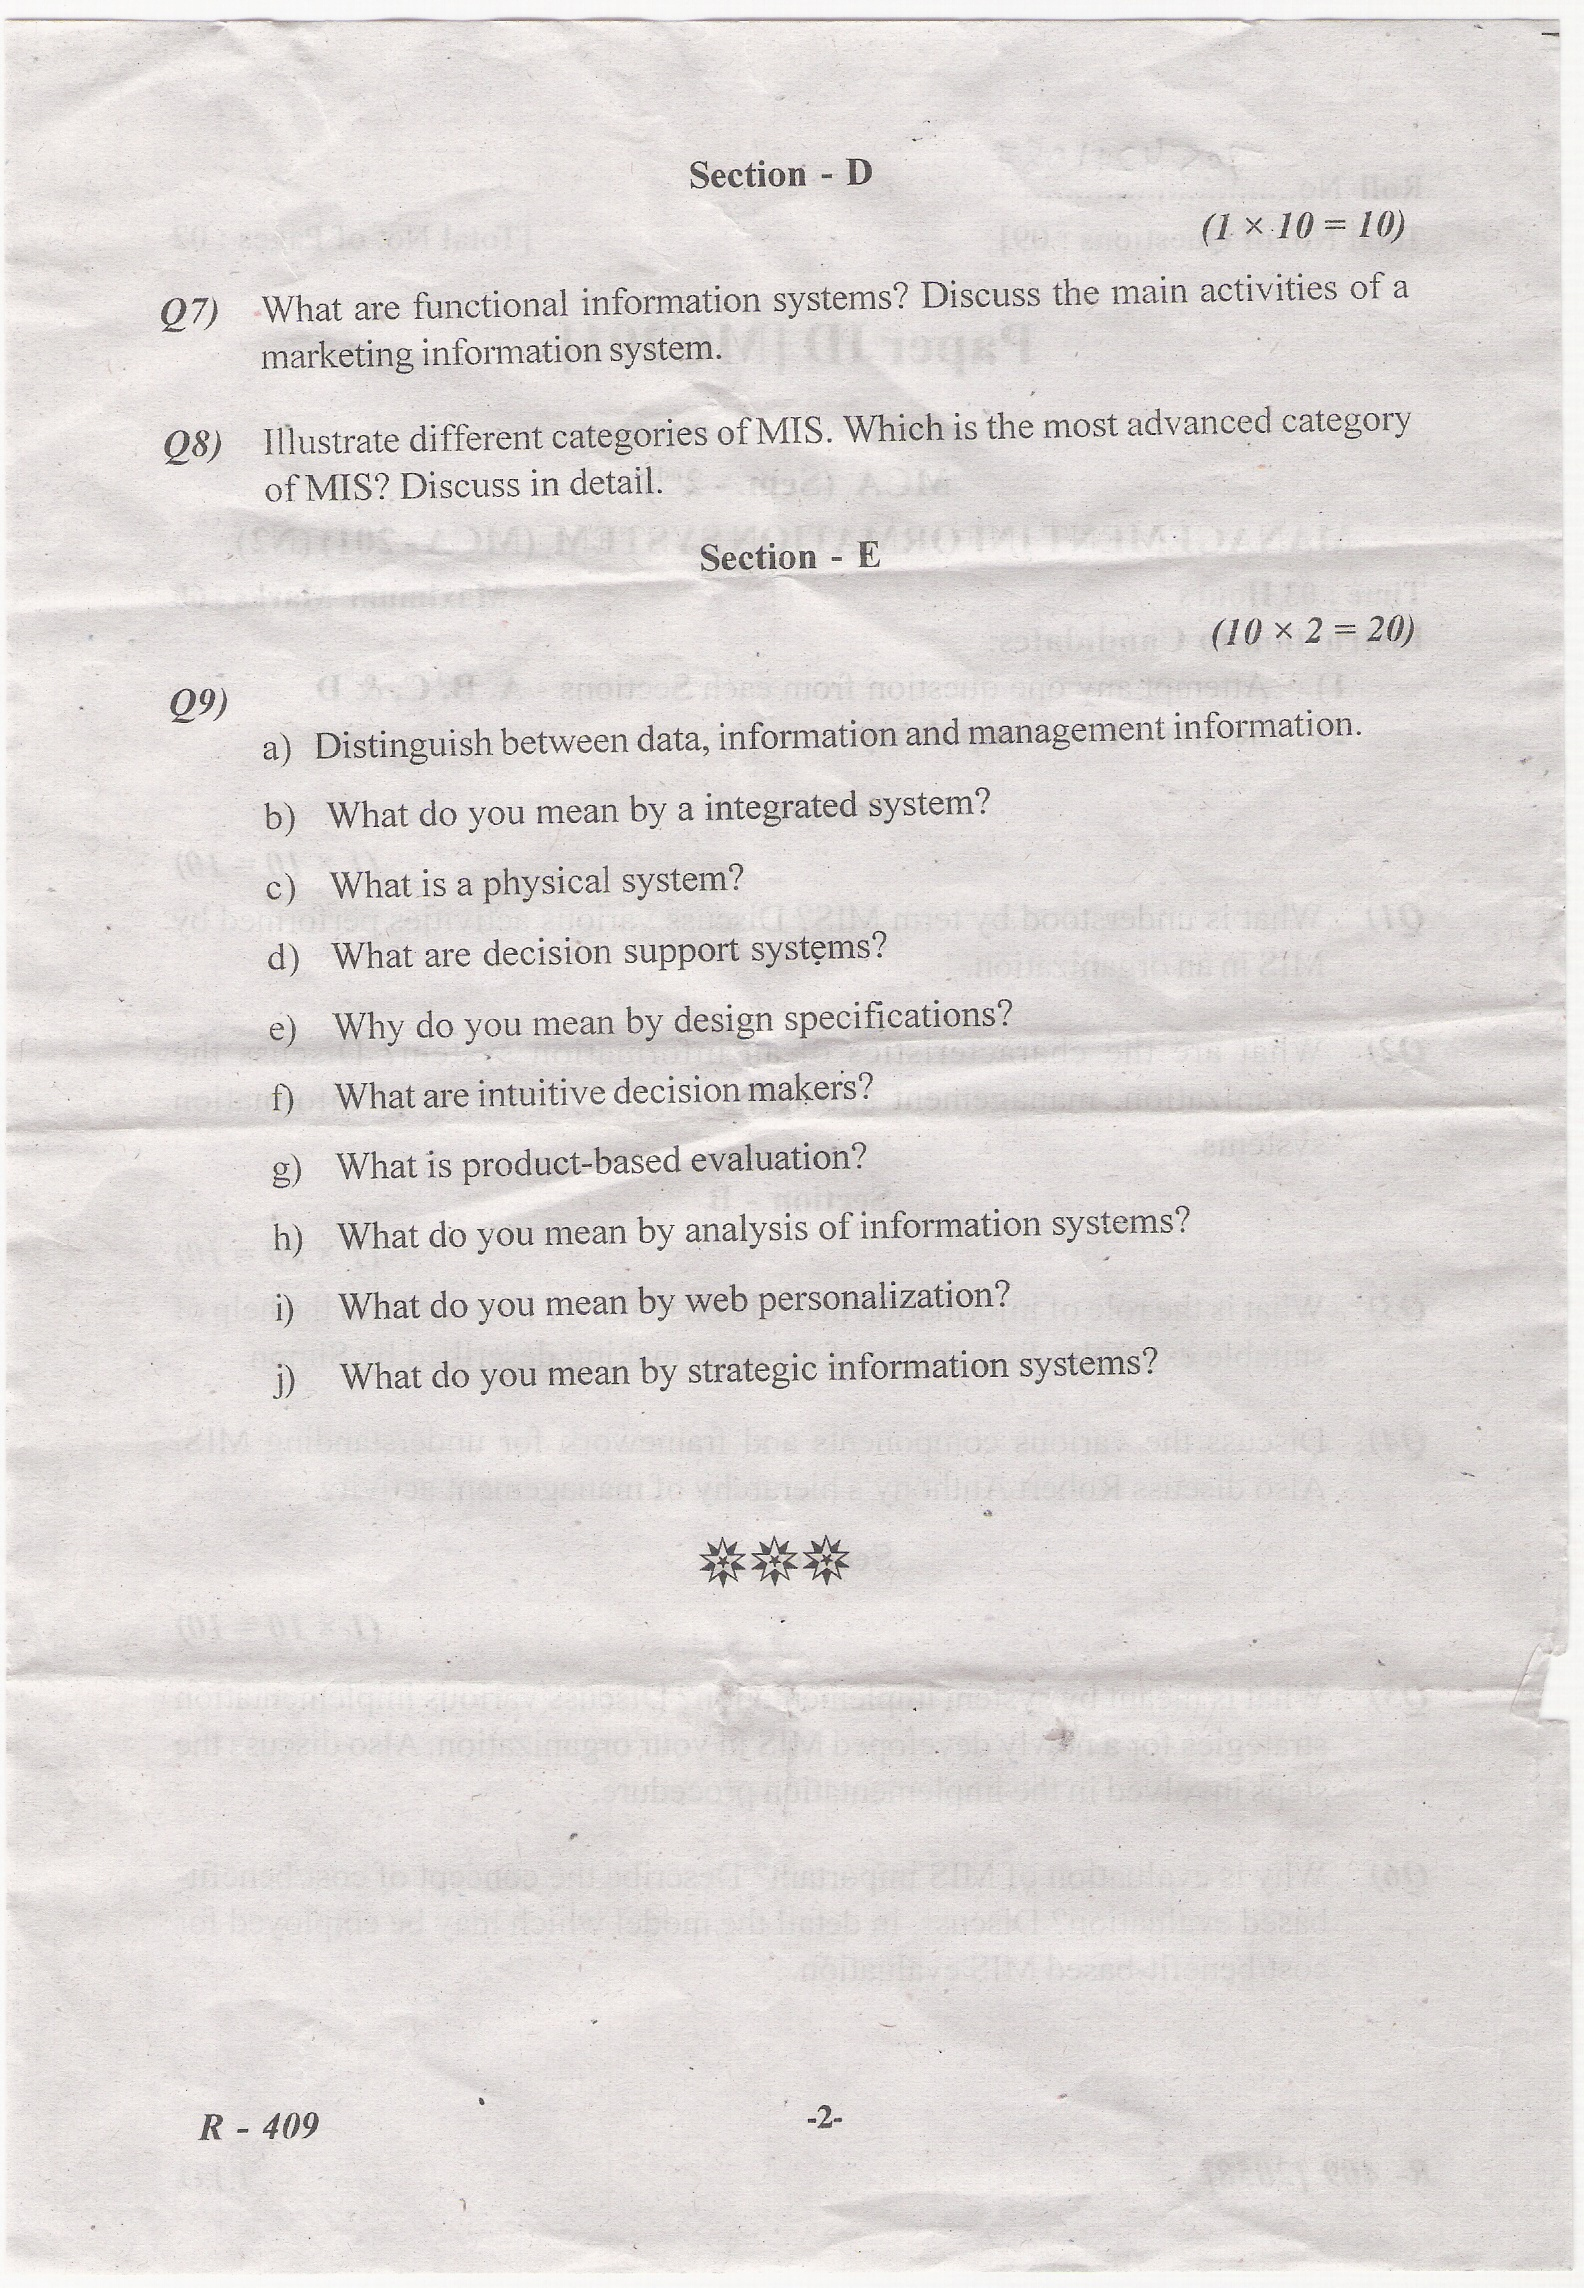 Punjab Technical University Computer MIS model question papers